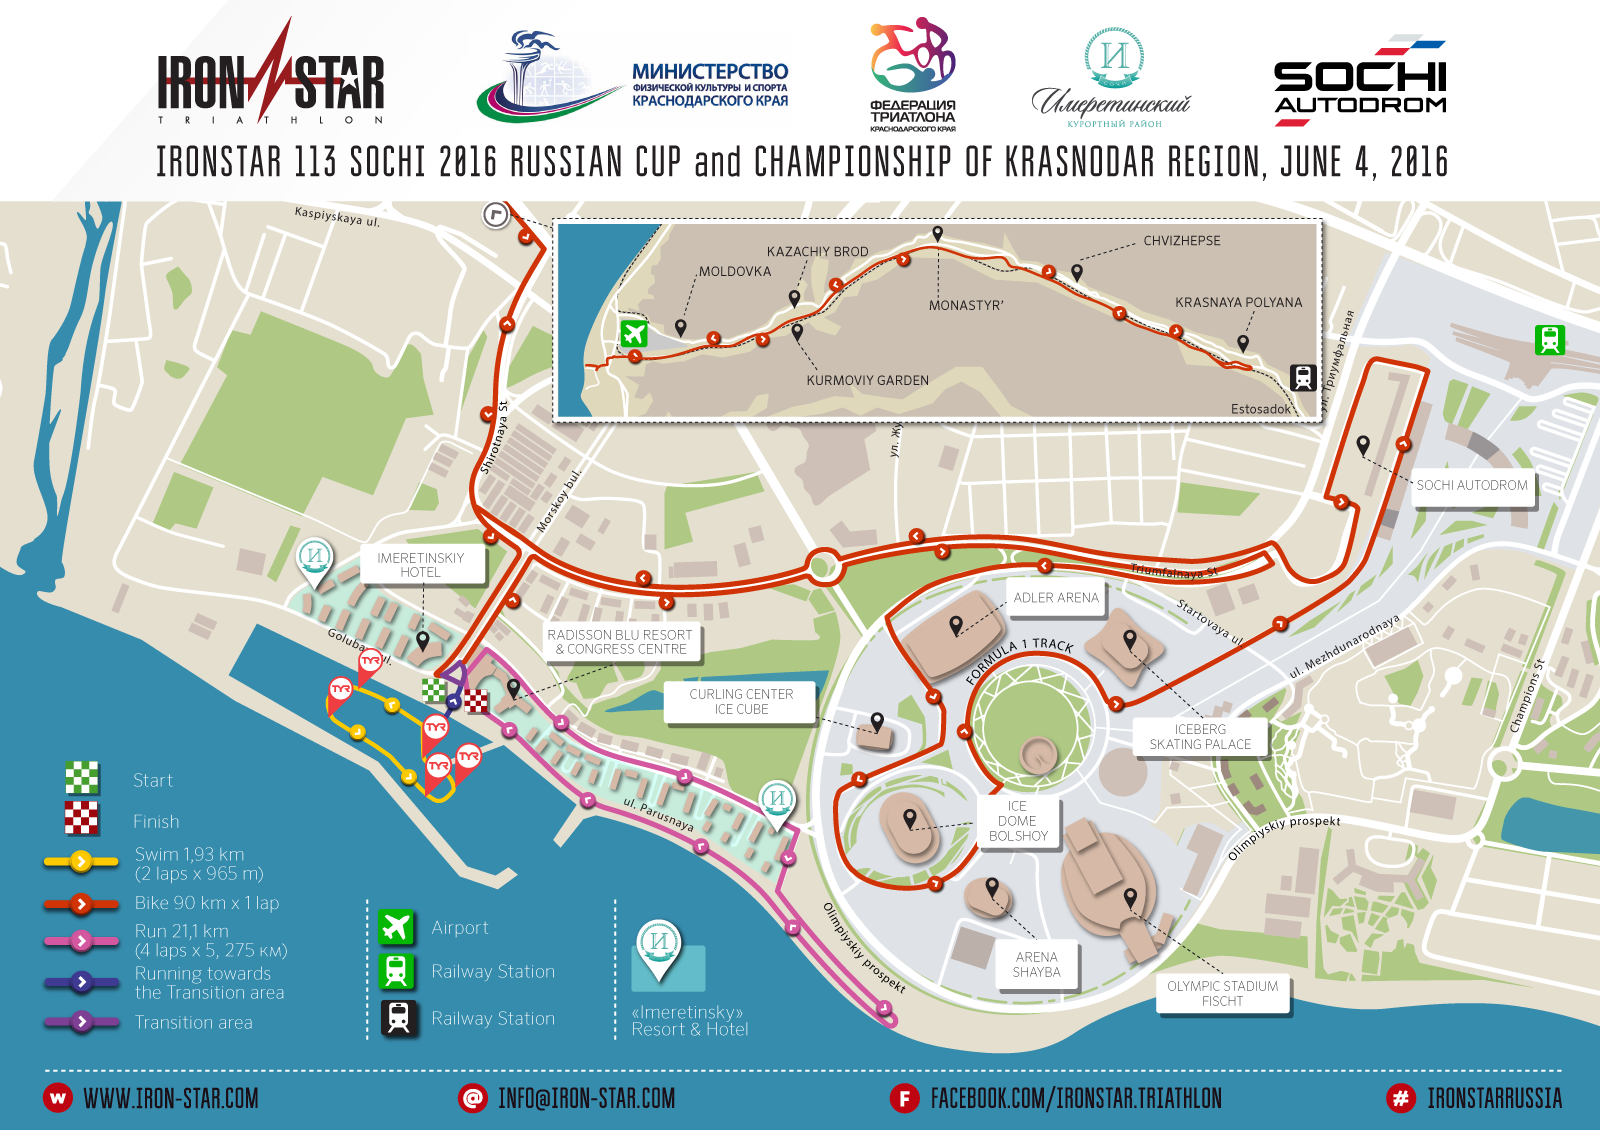 Route of IRONSTAR 113 SOCHI 2016